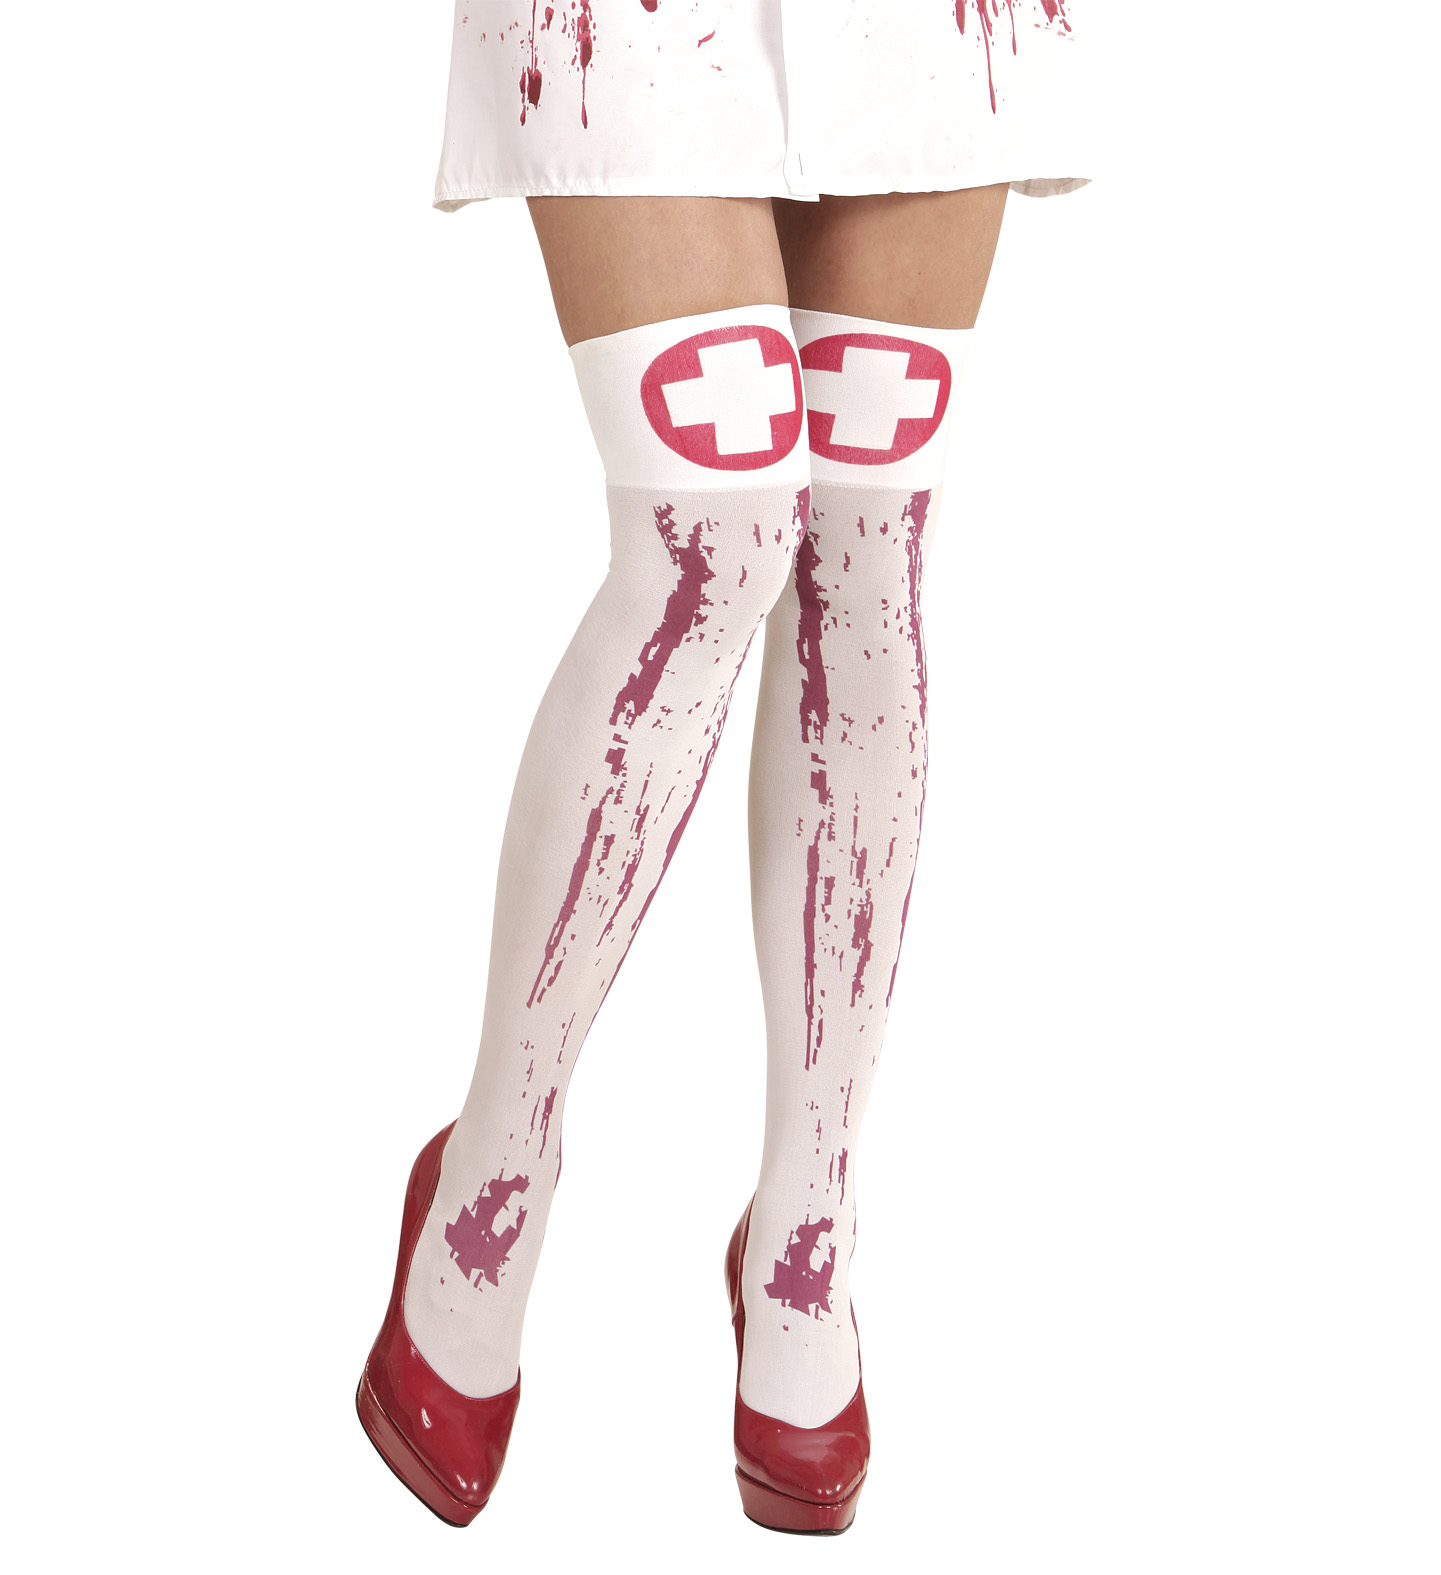 Bloody Nurse Thigh Highs Stockings Tights Pantyhose Lingerie Halloween